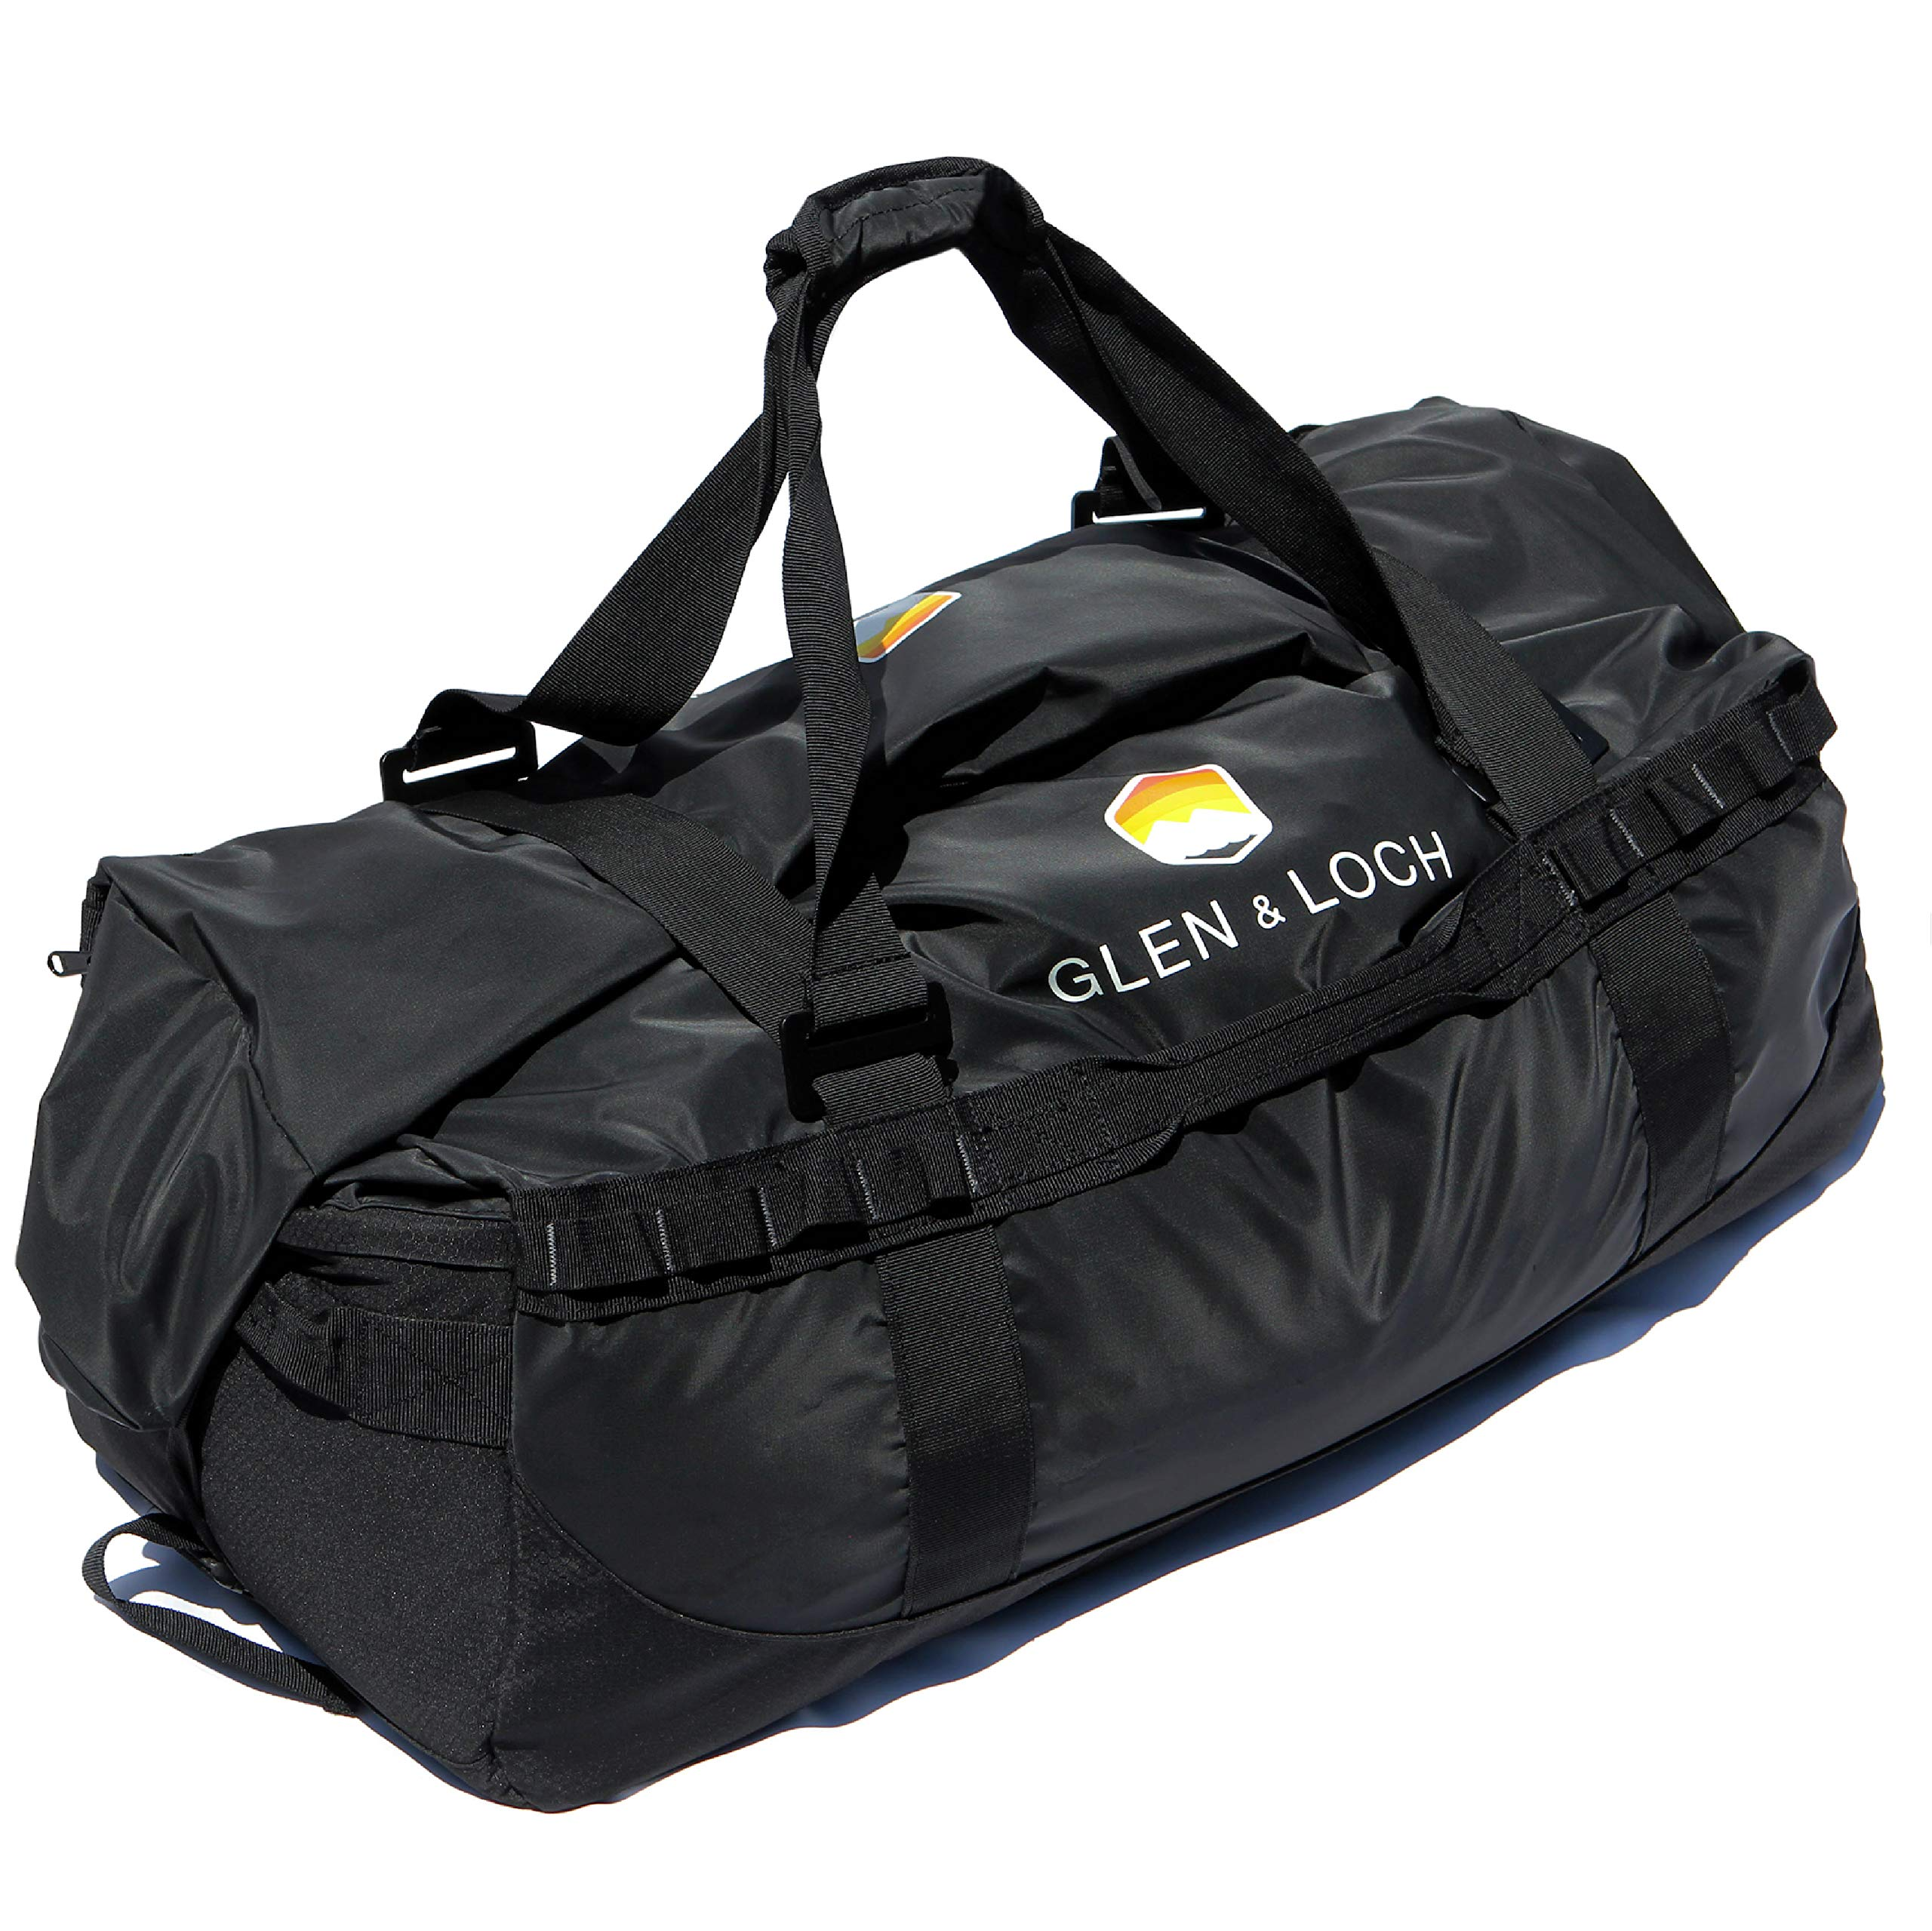 Glen & Loch High Point Weatherproof Duffel Outdoor Hiking Camping Kayaking Boating Travel Bag - High Point